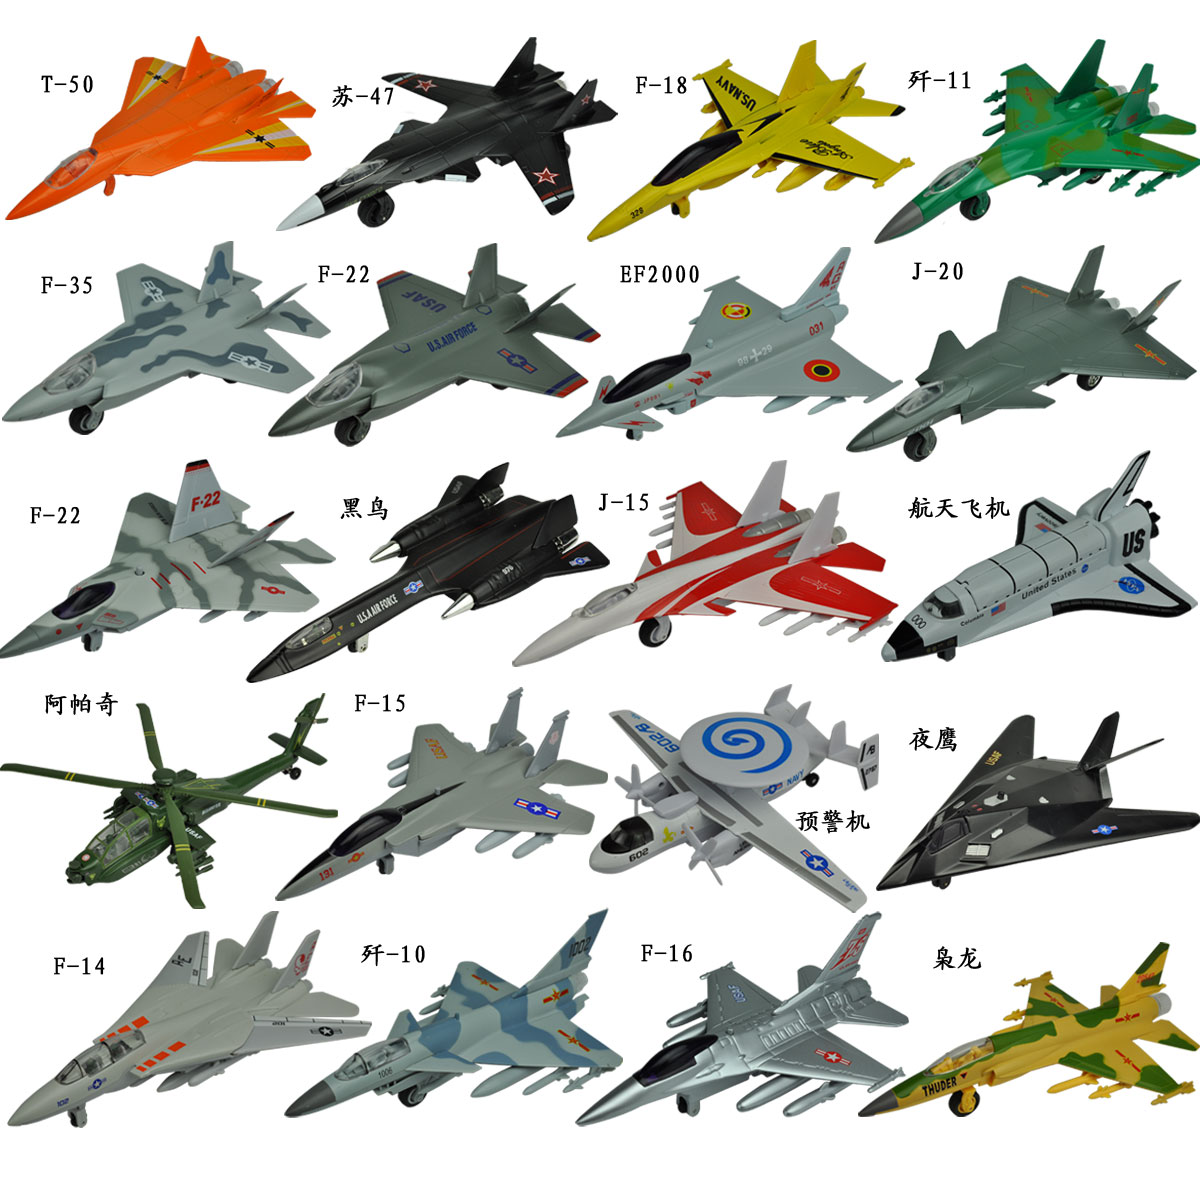 alloy model Diecasts warplanes F22 F16 E-2C AH-64D F15 SR-71 F35 apachi helicopter boy toy gift birthday present(China (Mainland))